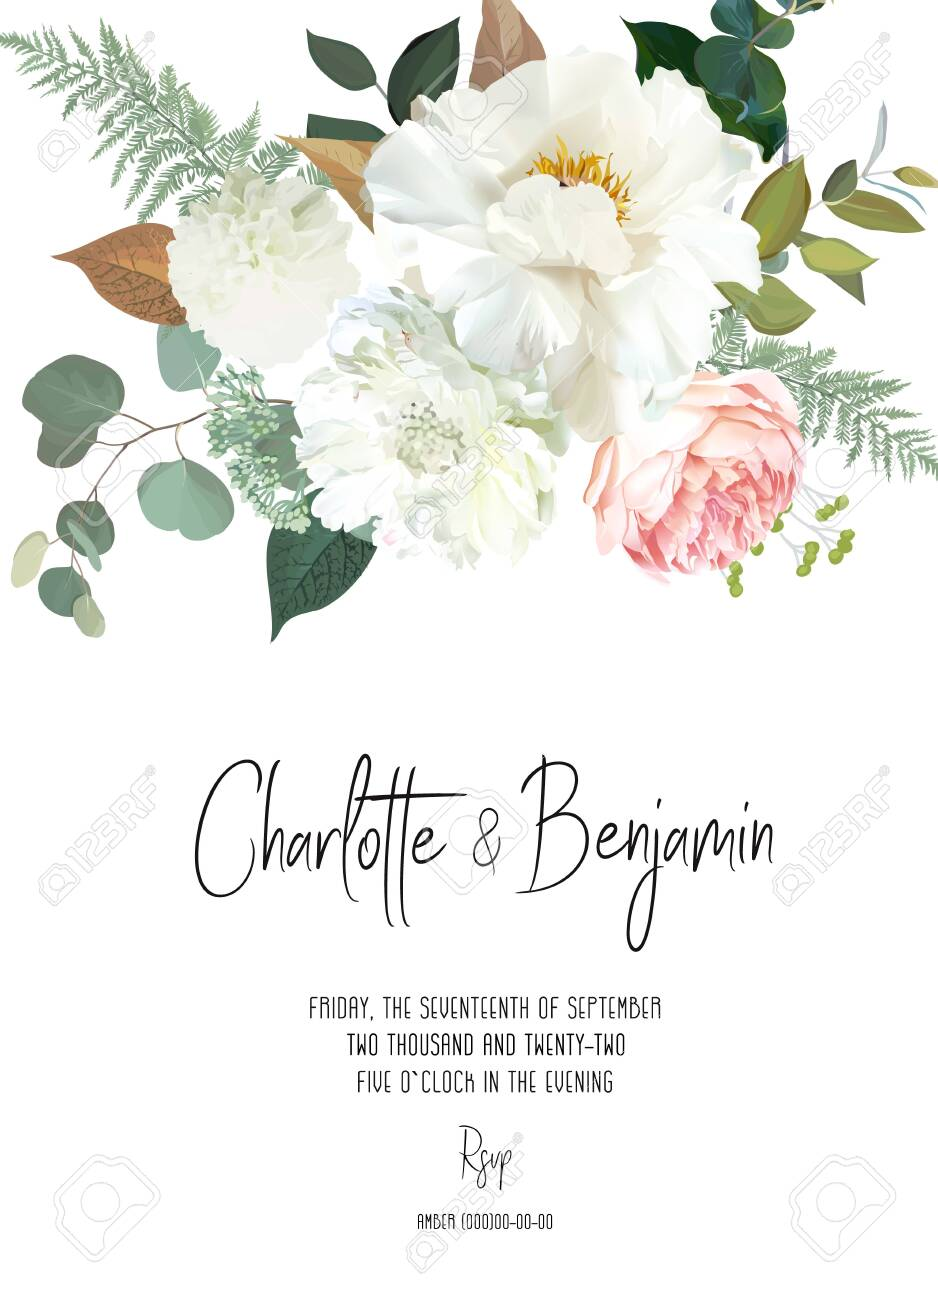 Retro delicate vector design flower card. Creamy peony, white dahlia, pink garden rose, eucalyptus, greenery, sage and blush. Wedding floral background. Watercolor vintage frame. Isolated and editable - 137413075